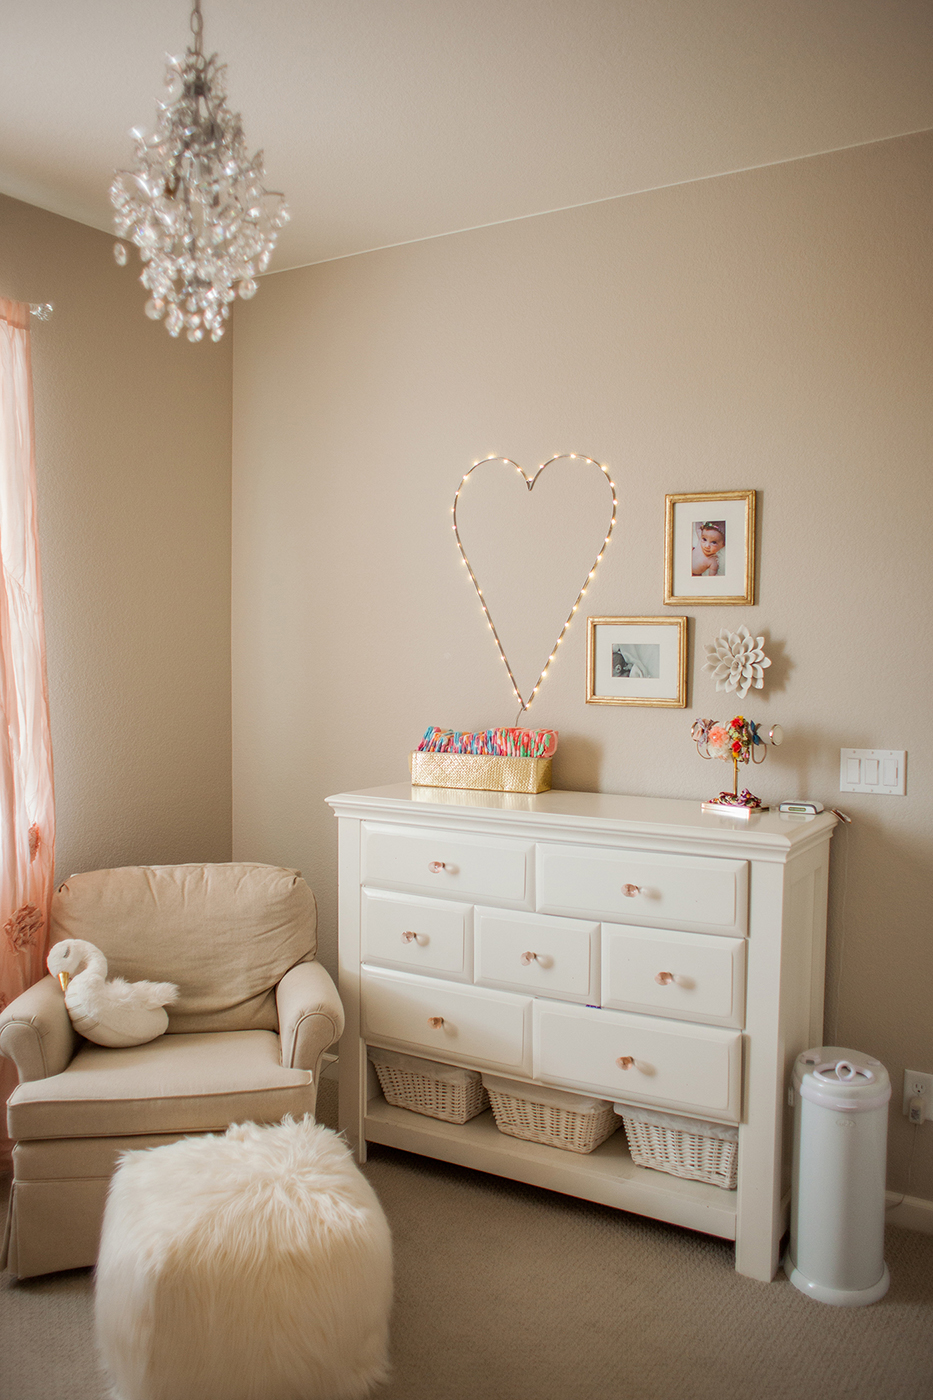 Blush Gold And Floral Inspired Baby Room Kailey Marie